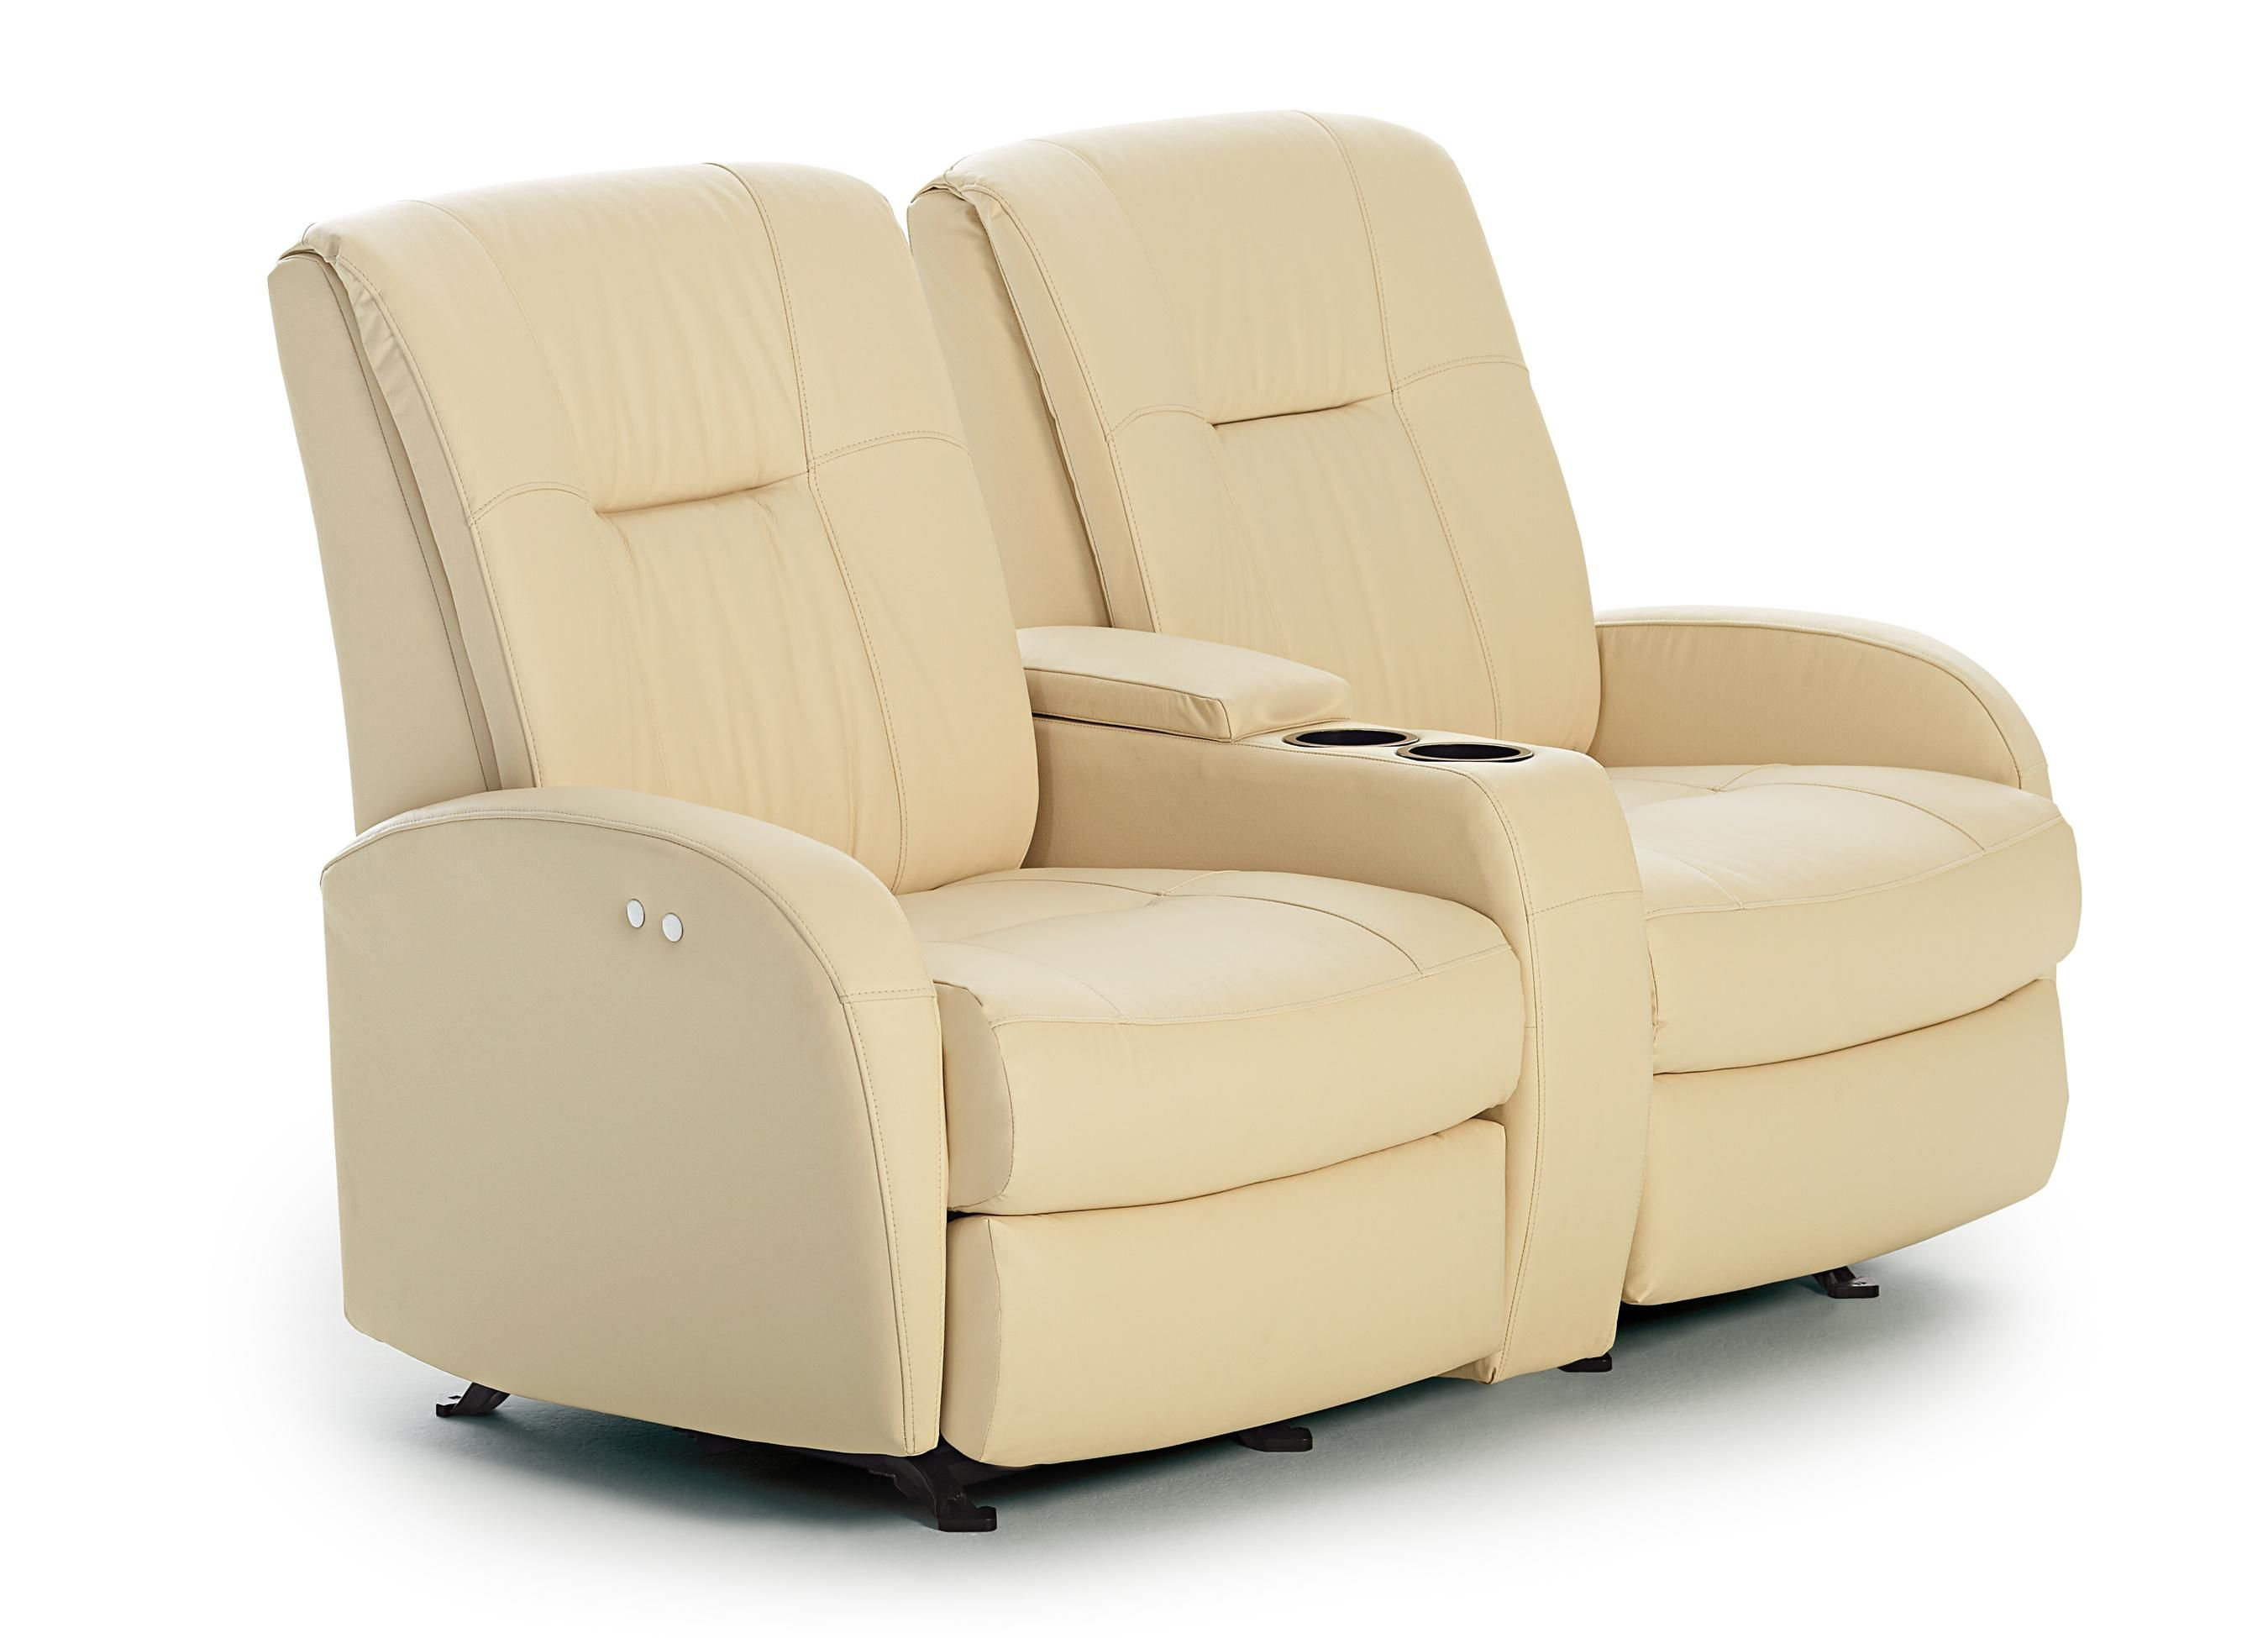 Remarkable Reclining Loveseat With Console Ruddick Contemporary Space Saver Power Reclining Loveseat With Console  sc 1 st  Pinterest : recliner small - islam-shia.org